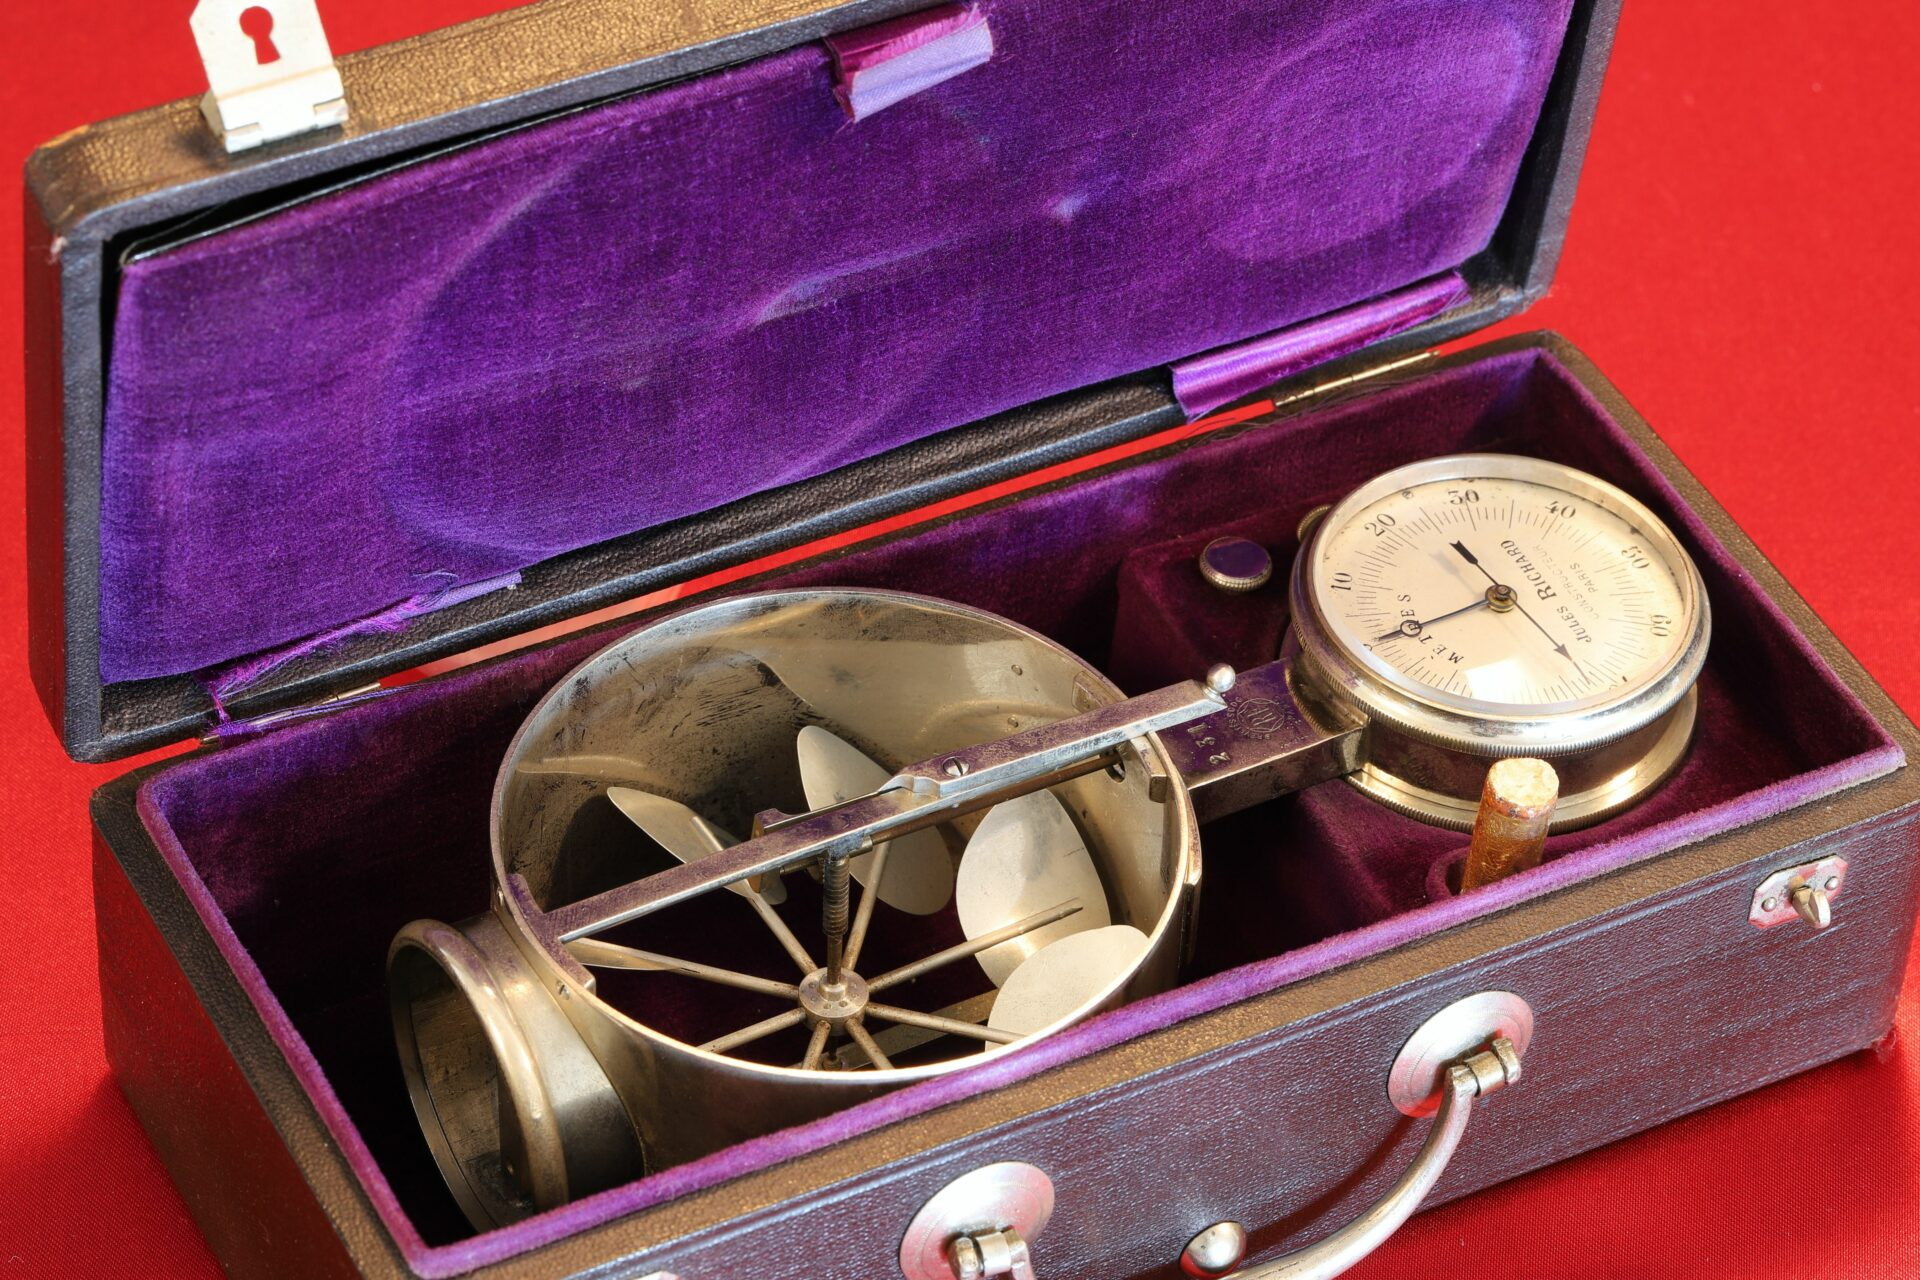 Image of Jules Richard Anemometer No 2316 c1890 in open case